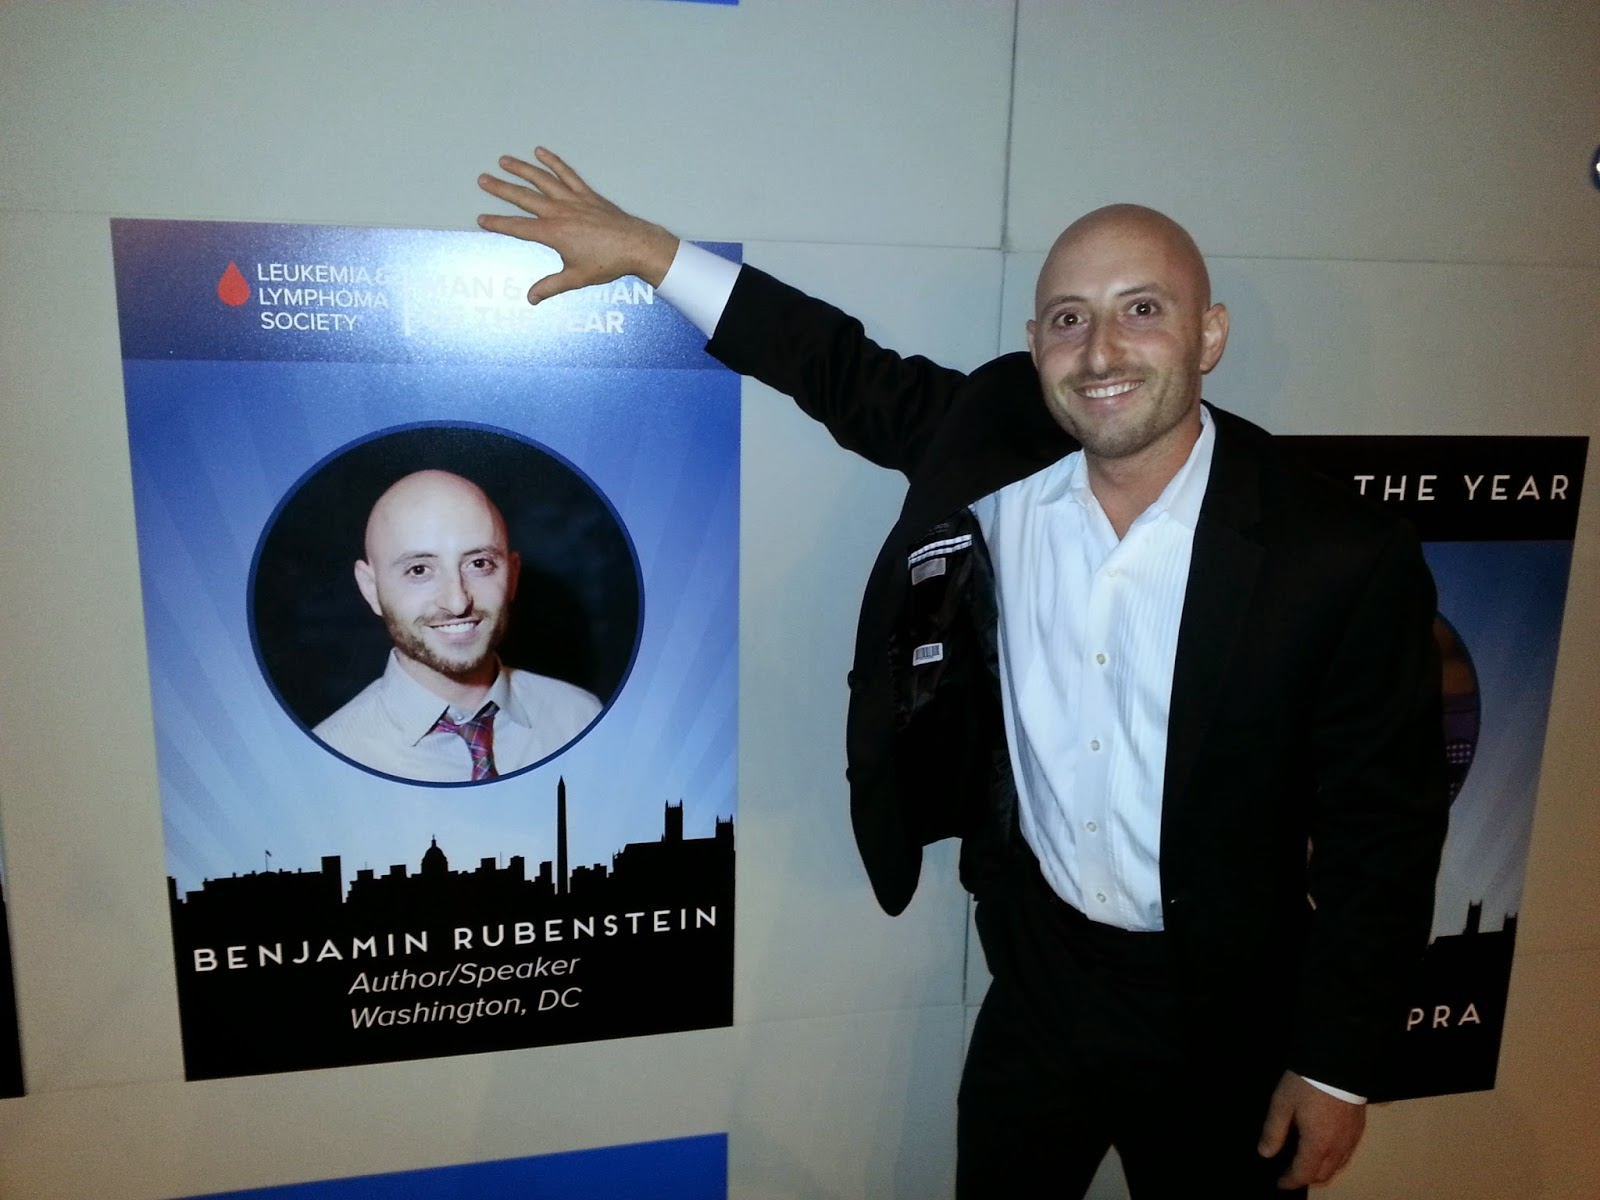 Benjamin Rubenstein meeting himself as a candidate for Man & Woman of the Year